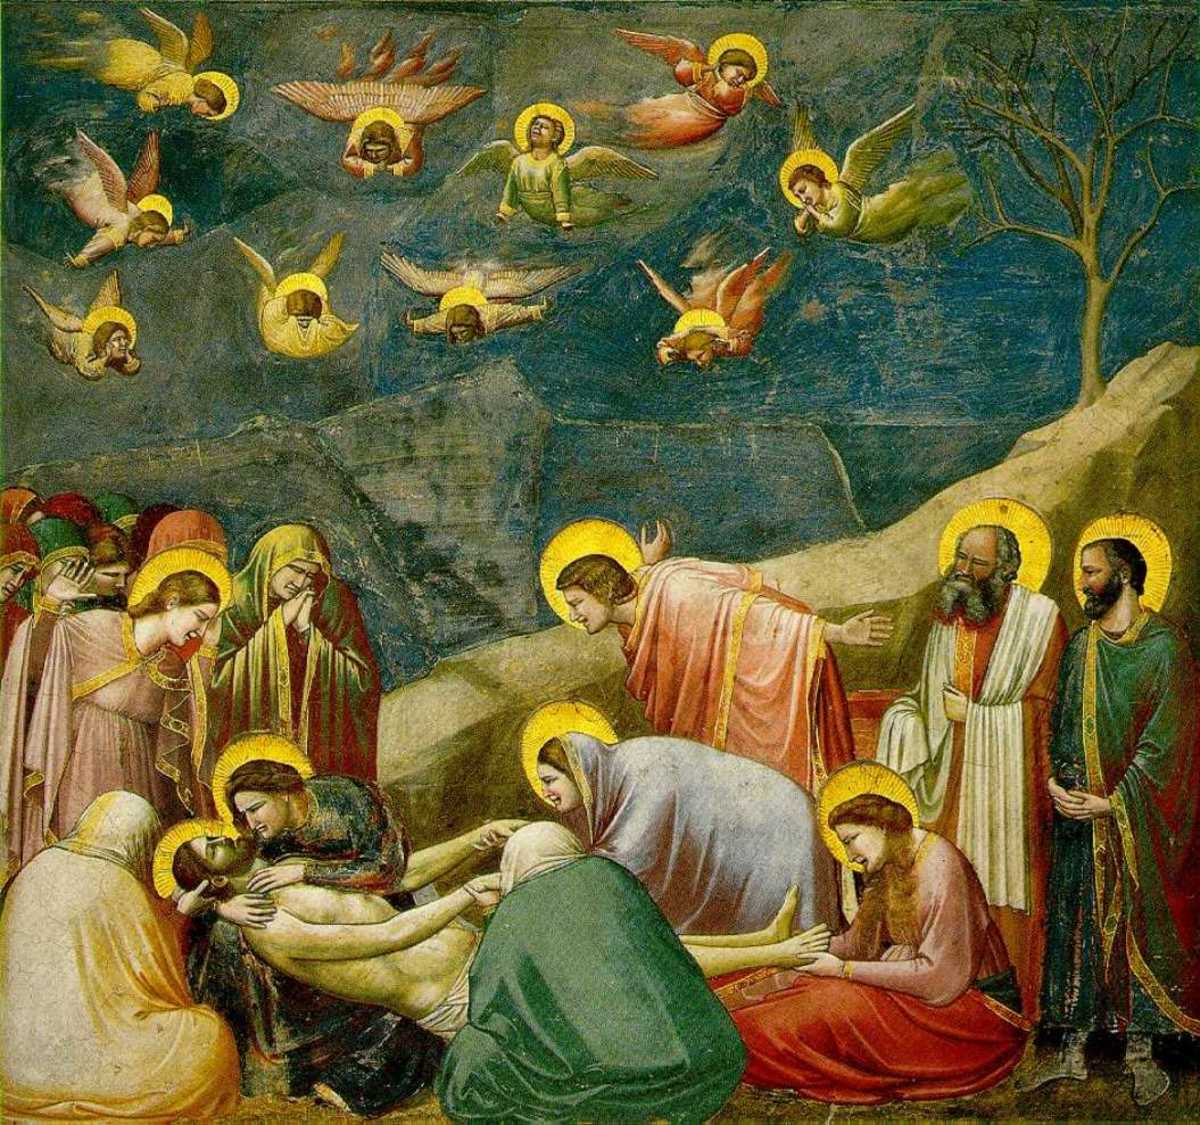 LAMENTATION BY GIOTTO 1305